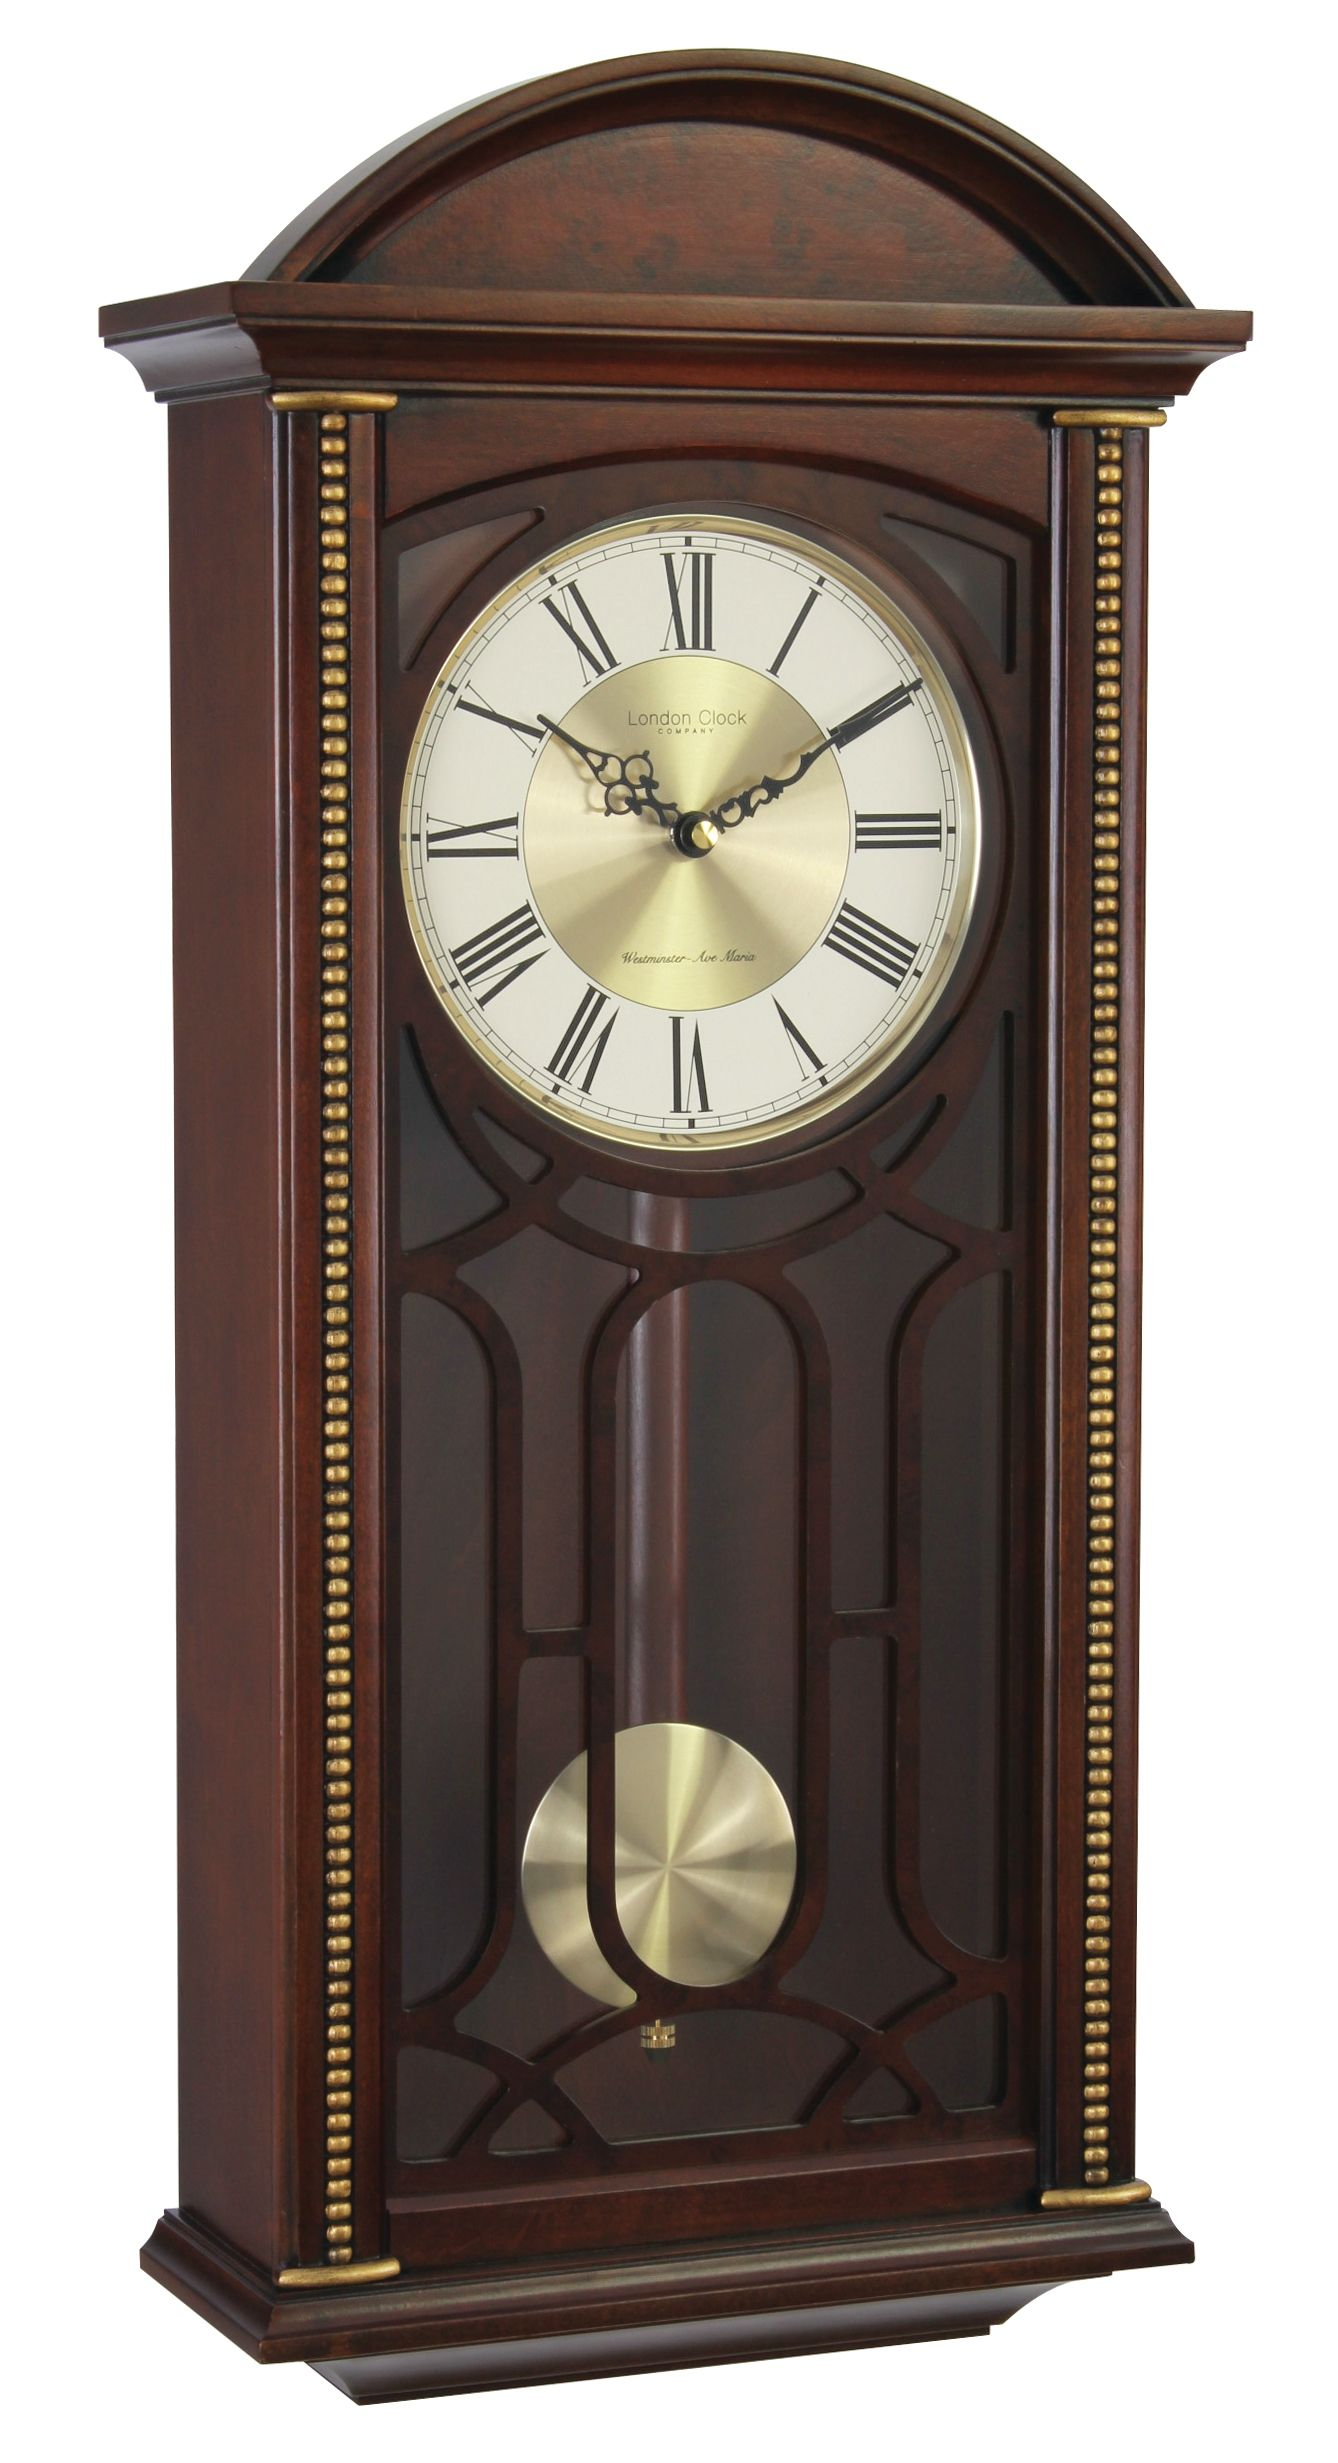 Images Of Pendulum Wall Clocks With Chimes Google Search Wall Clock Clock Vintage Wall Clock